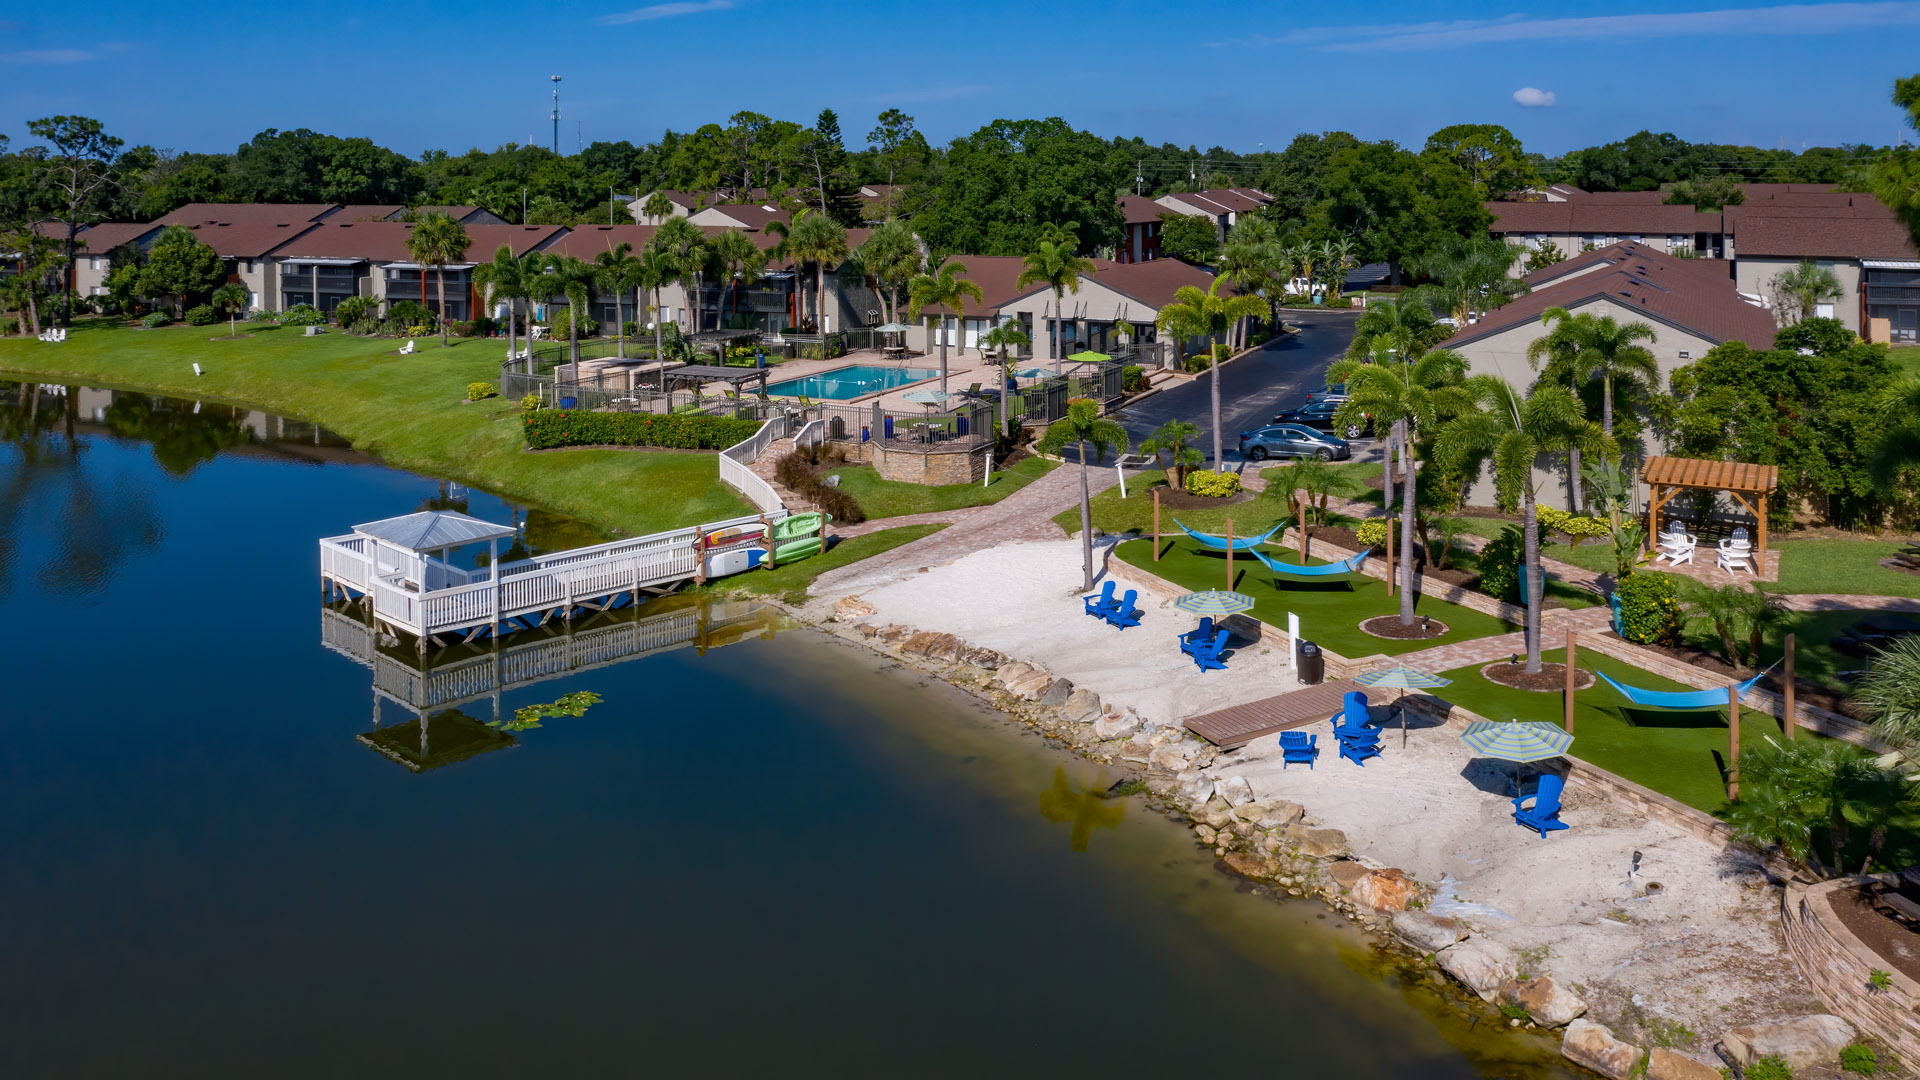 Aerial view of pool, beach and dock